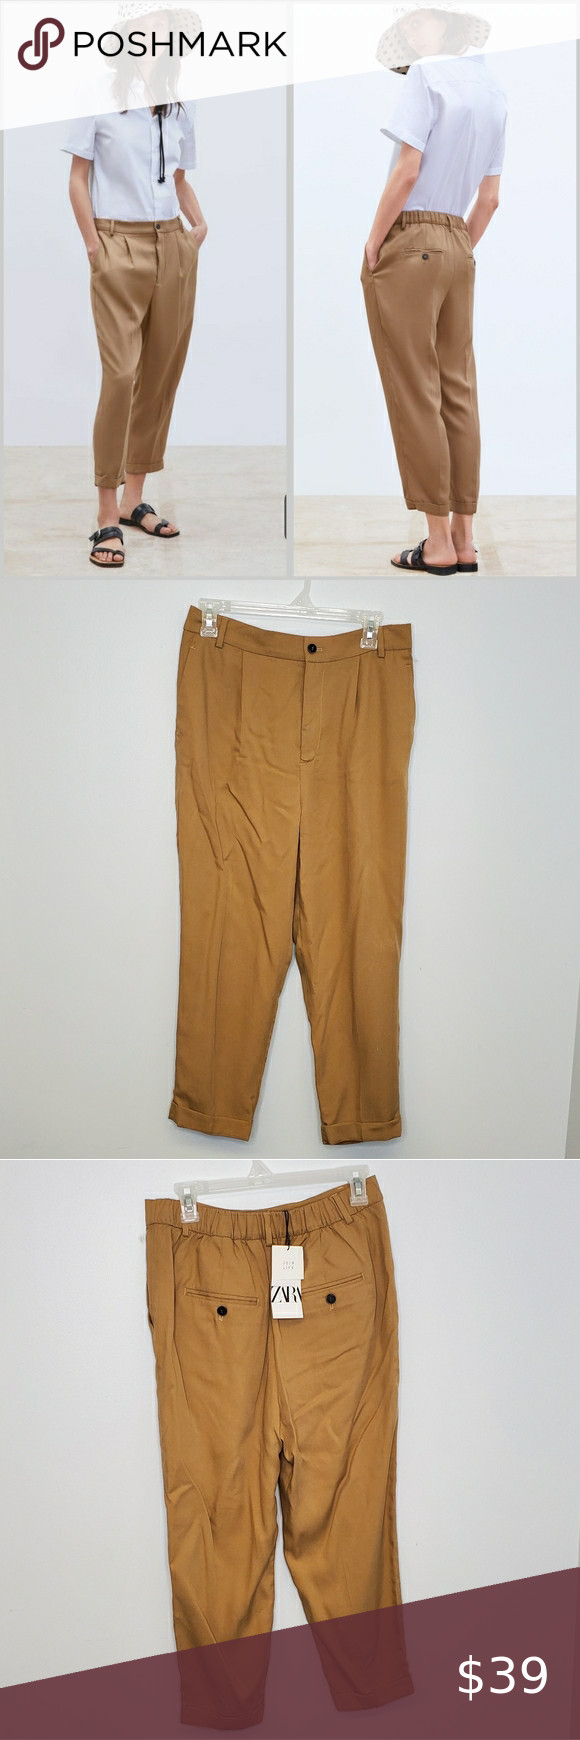 How To Hem Pants With A Cuff Zara Trouser With Roll Up Cuff Hem Menswear Pants Zara Mid Rise Pant With Interior Elastic Waist Front Pockets And Back Double We In 2020 Zara Trousers Menswear Pants